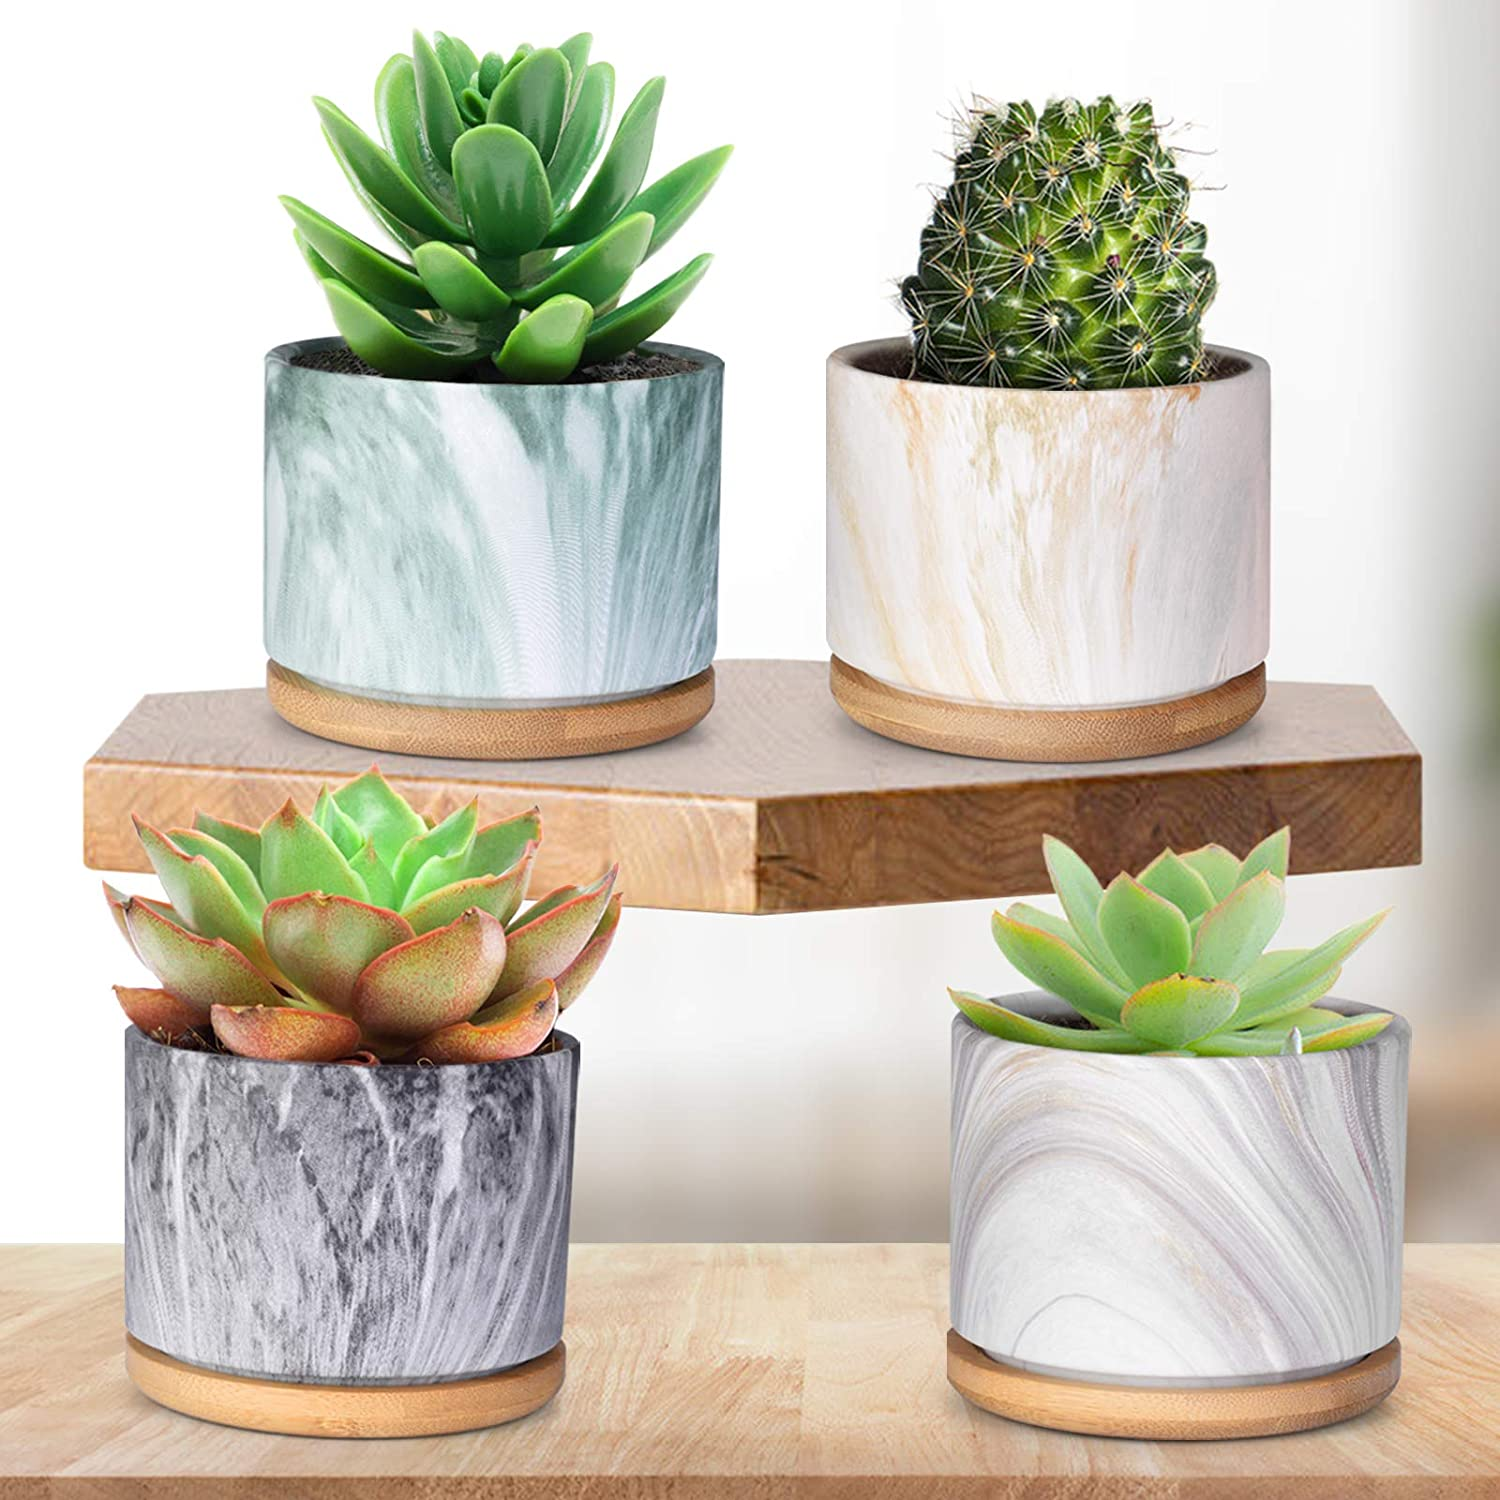 "Succulent Pots, 3.5"" Succulent Planters with Drainage Hole, Marbling Ceramic Planters, Mini Succulent Plant Pots with Bamboo Tray, Great for Home Decor and Ideal Gift, Set of 4(Plants not Included)"